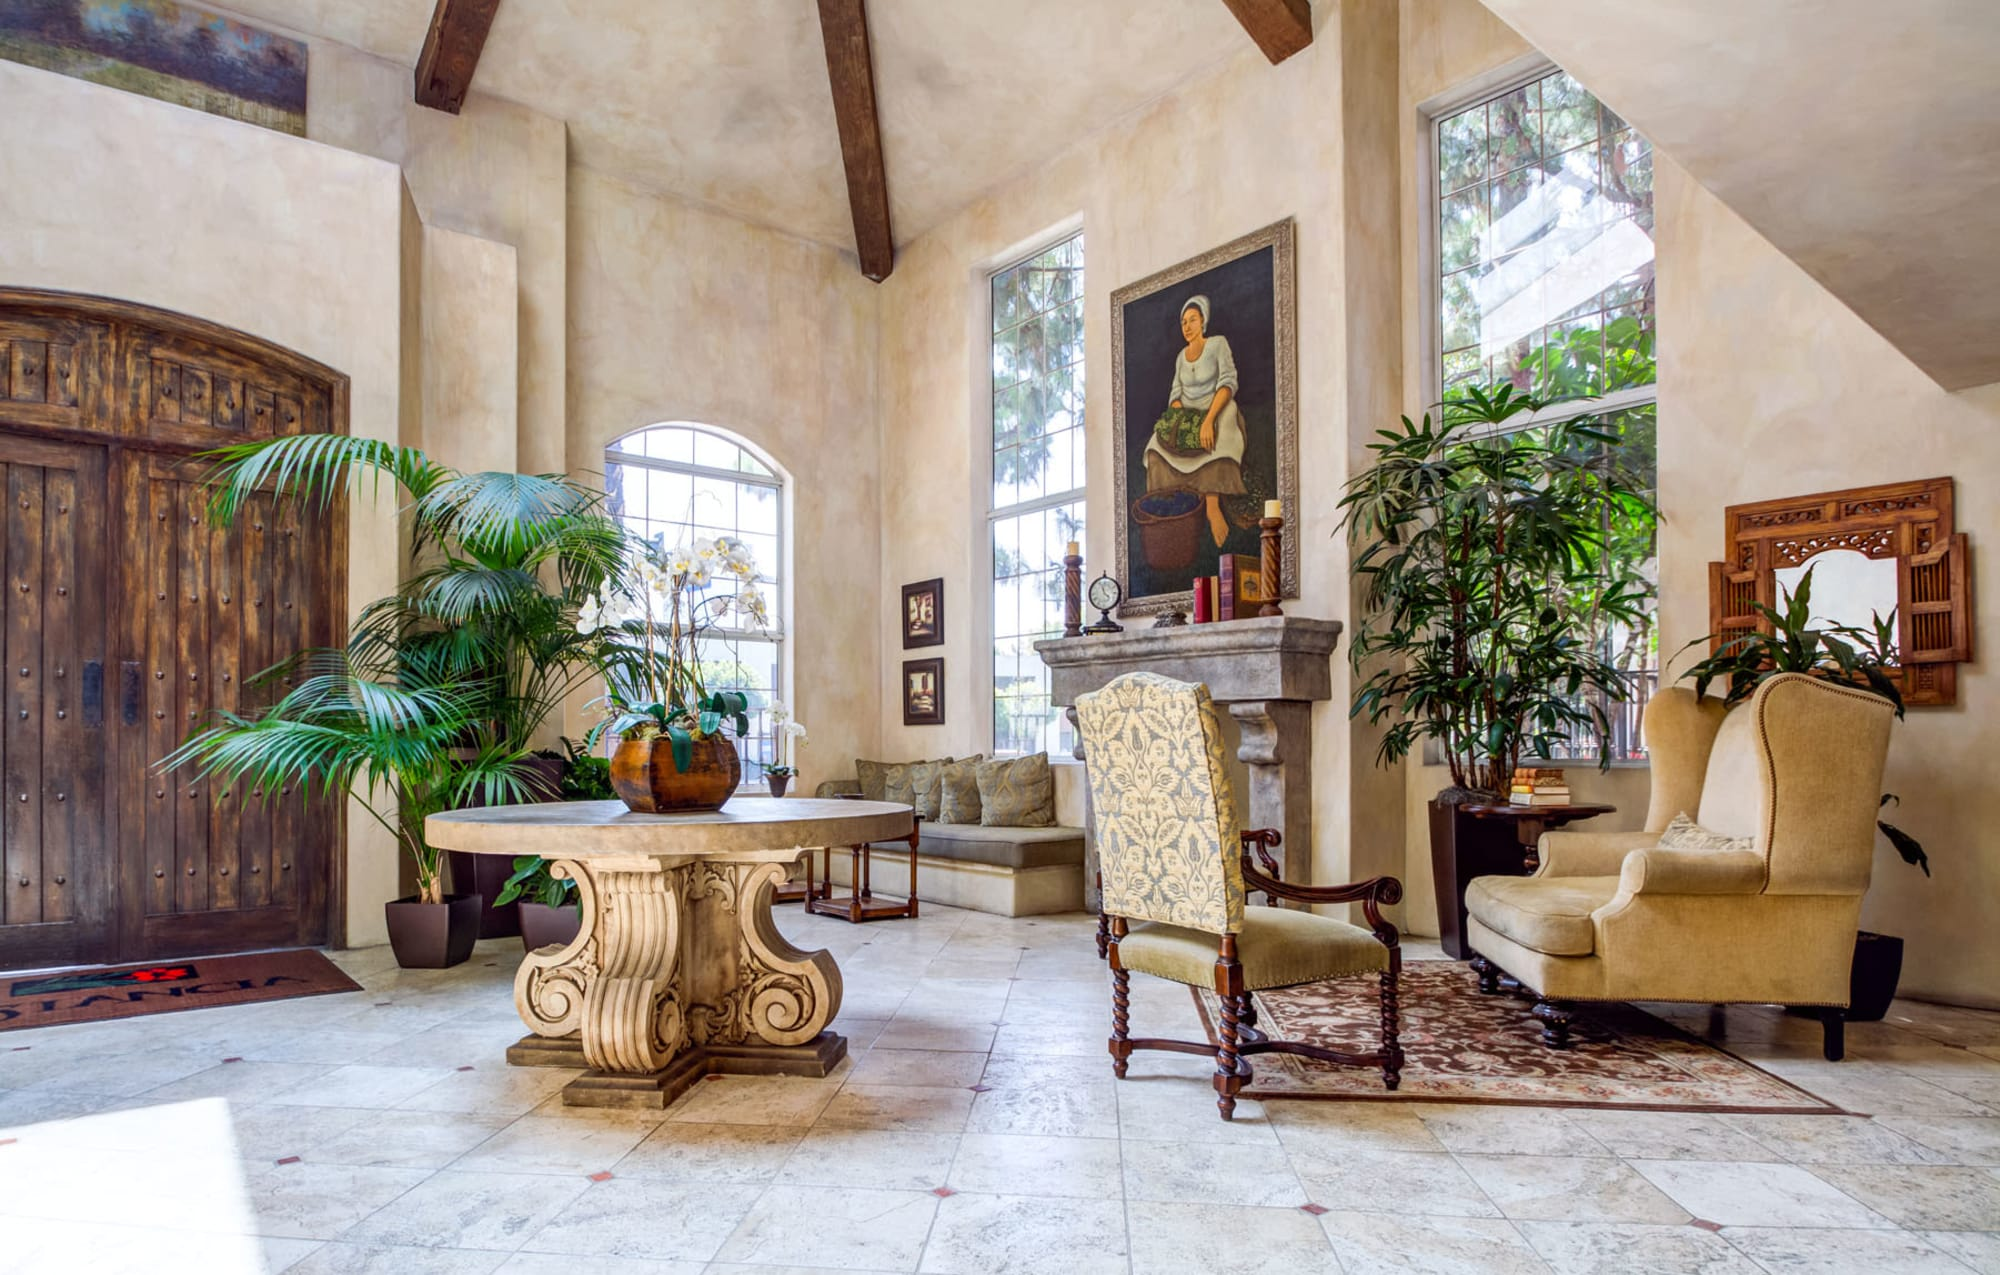 Mission-style architecture and furnishings in the lavishly decorated lobby at L'Estancia in Studio City, California